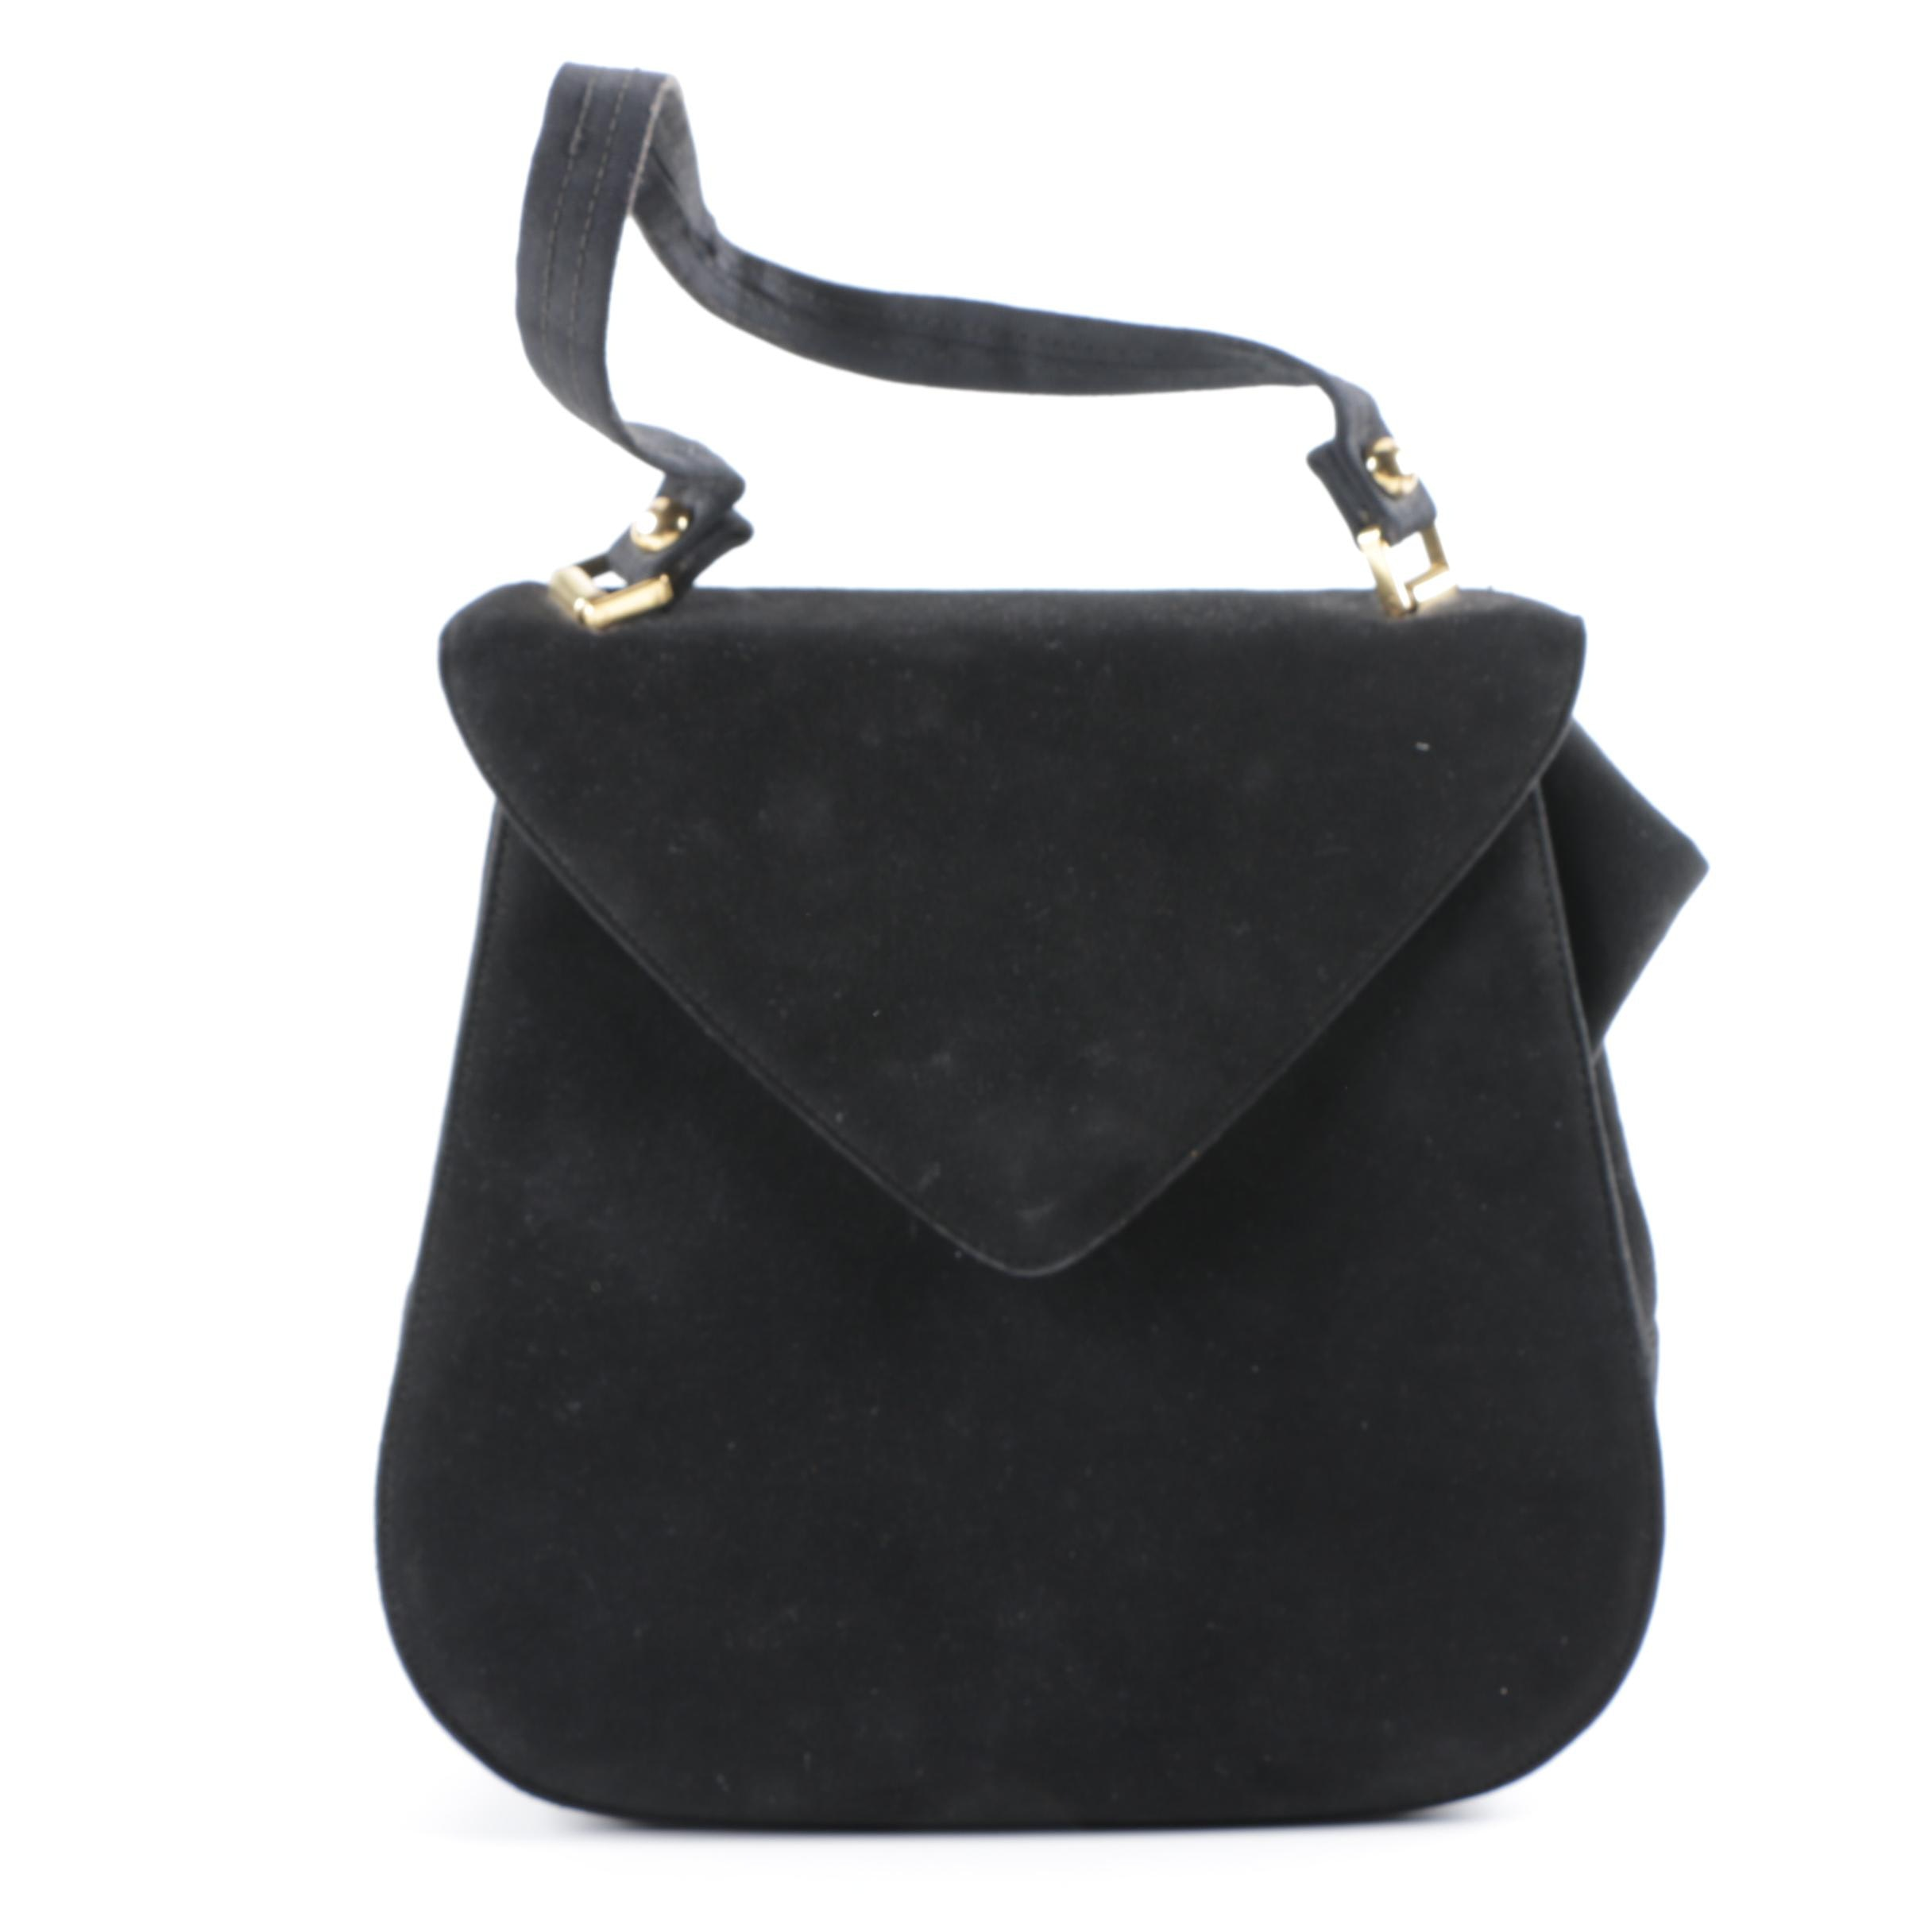 Vintage Lennox Black Suede Handbag with Fabric Strap and Satin Lining